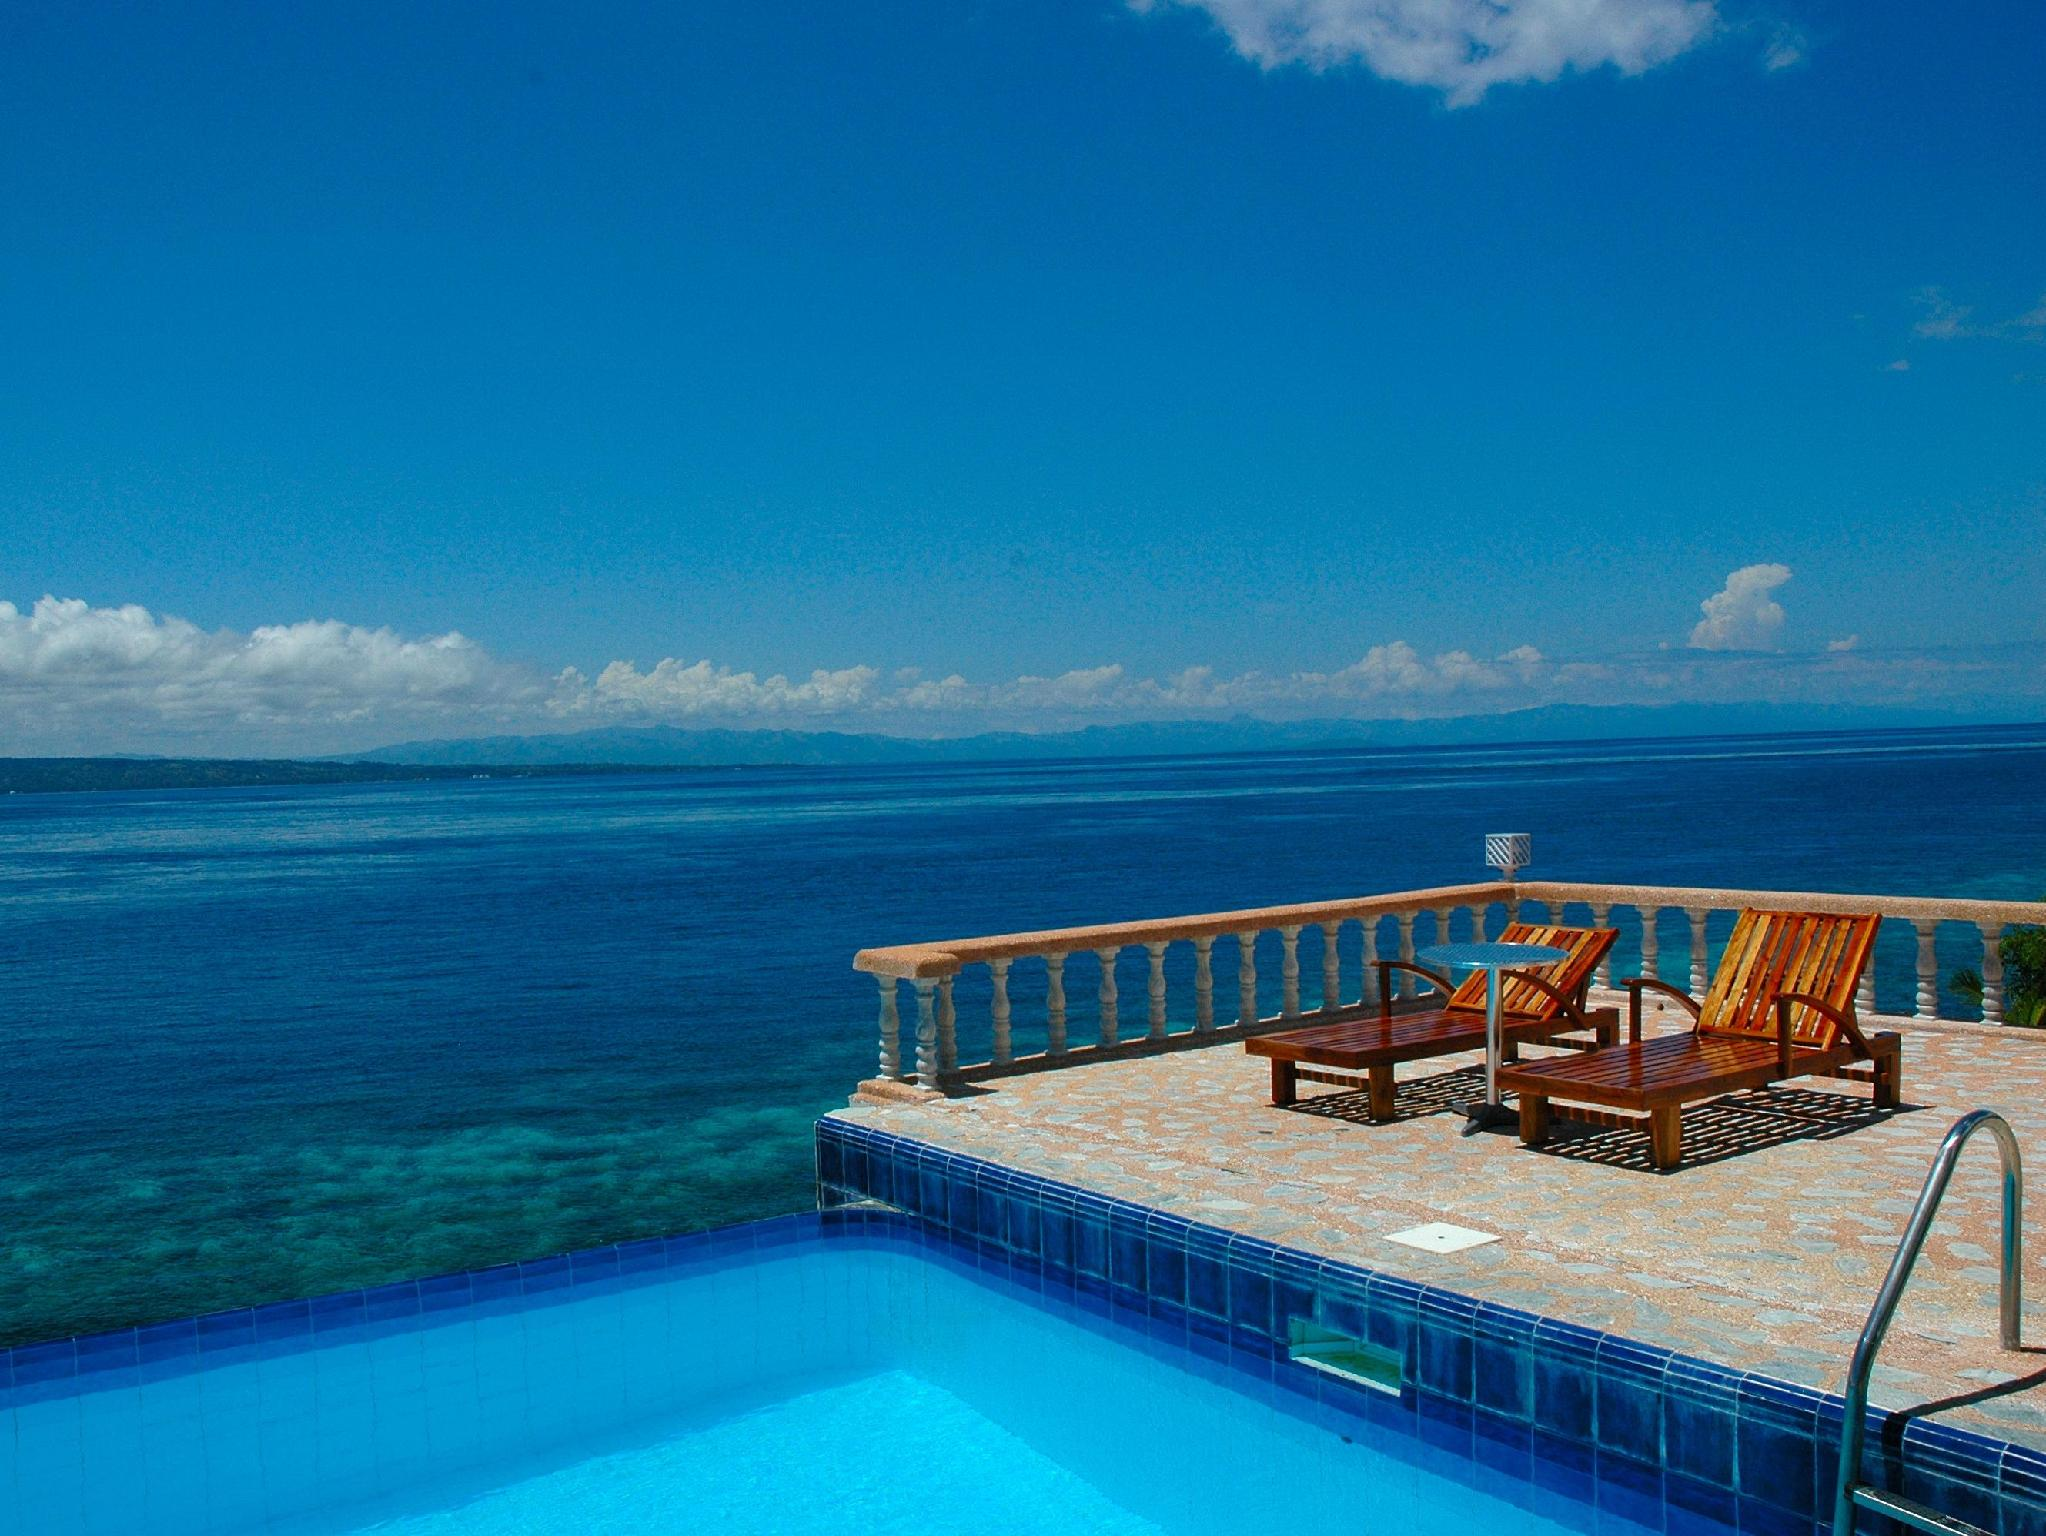 Eden Resort Cebú - Piscina